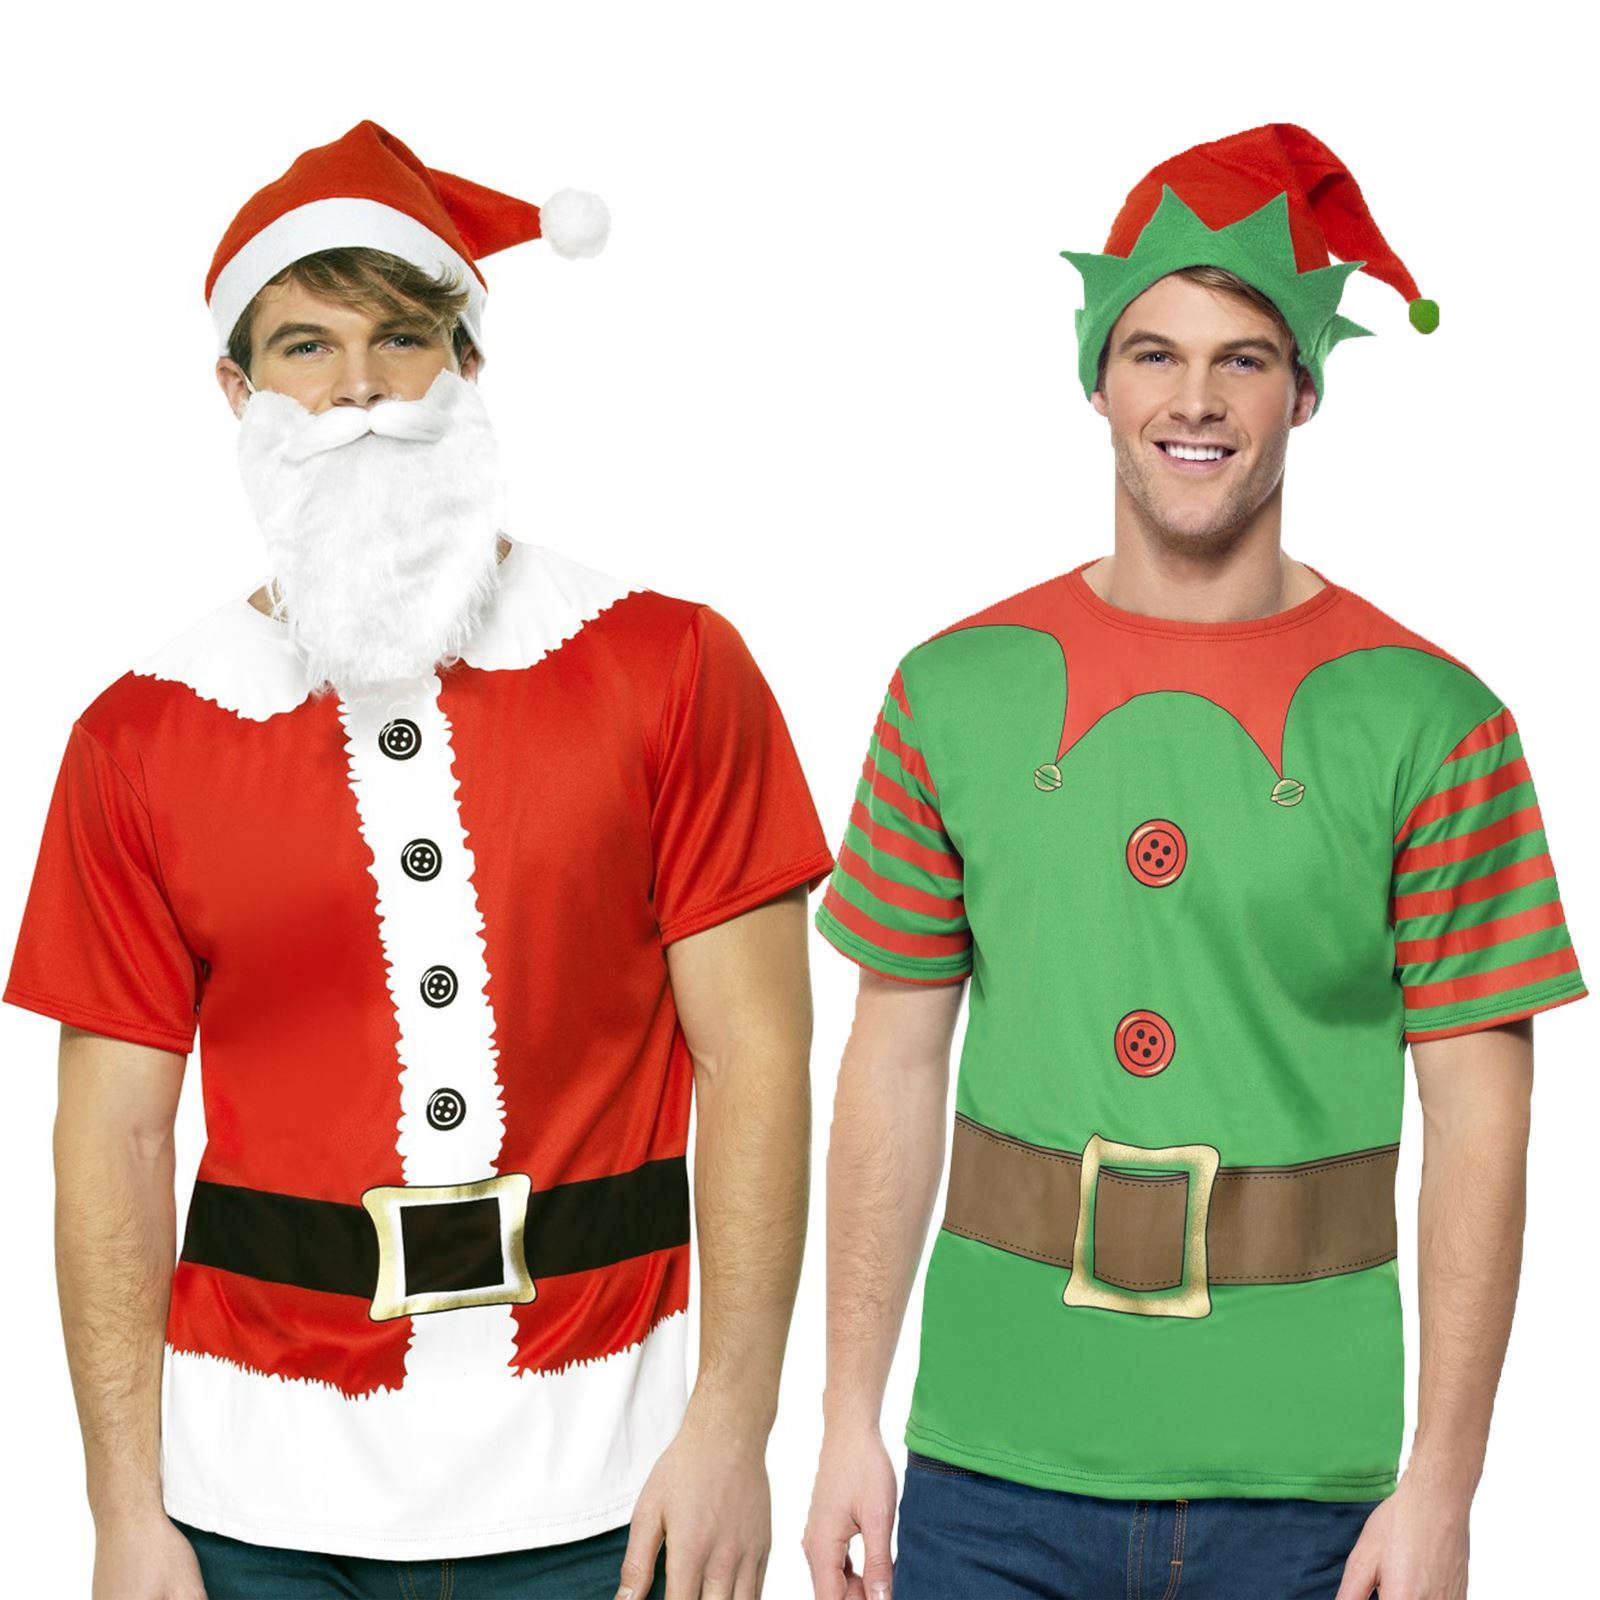 Details about Adult Mens Christmas Elf Santa Claus Instant T Shirt Christmas Costume Kit Easy